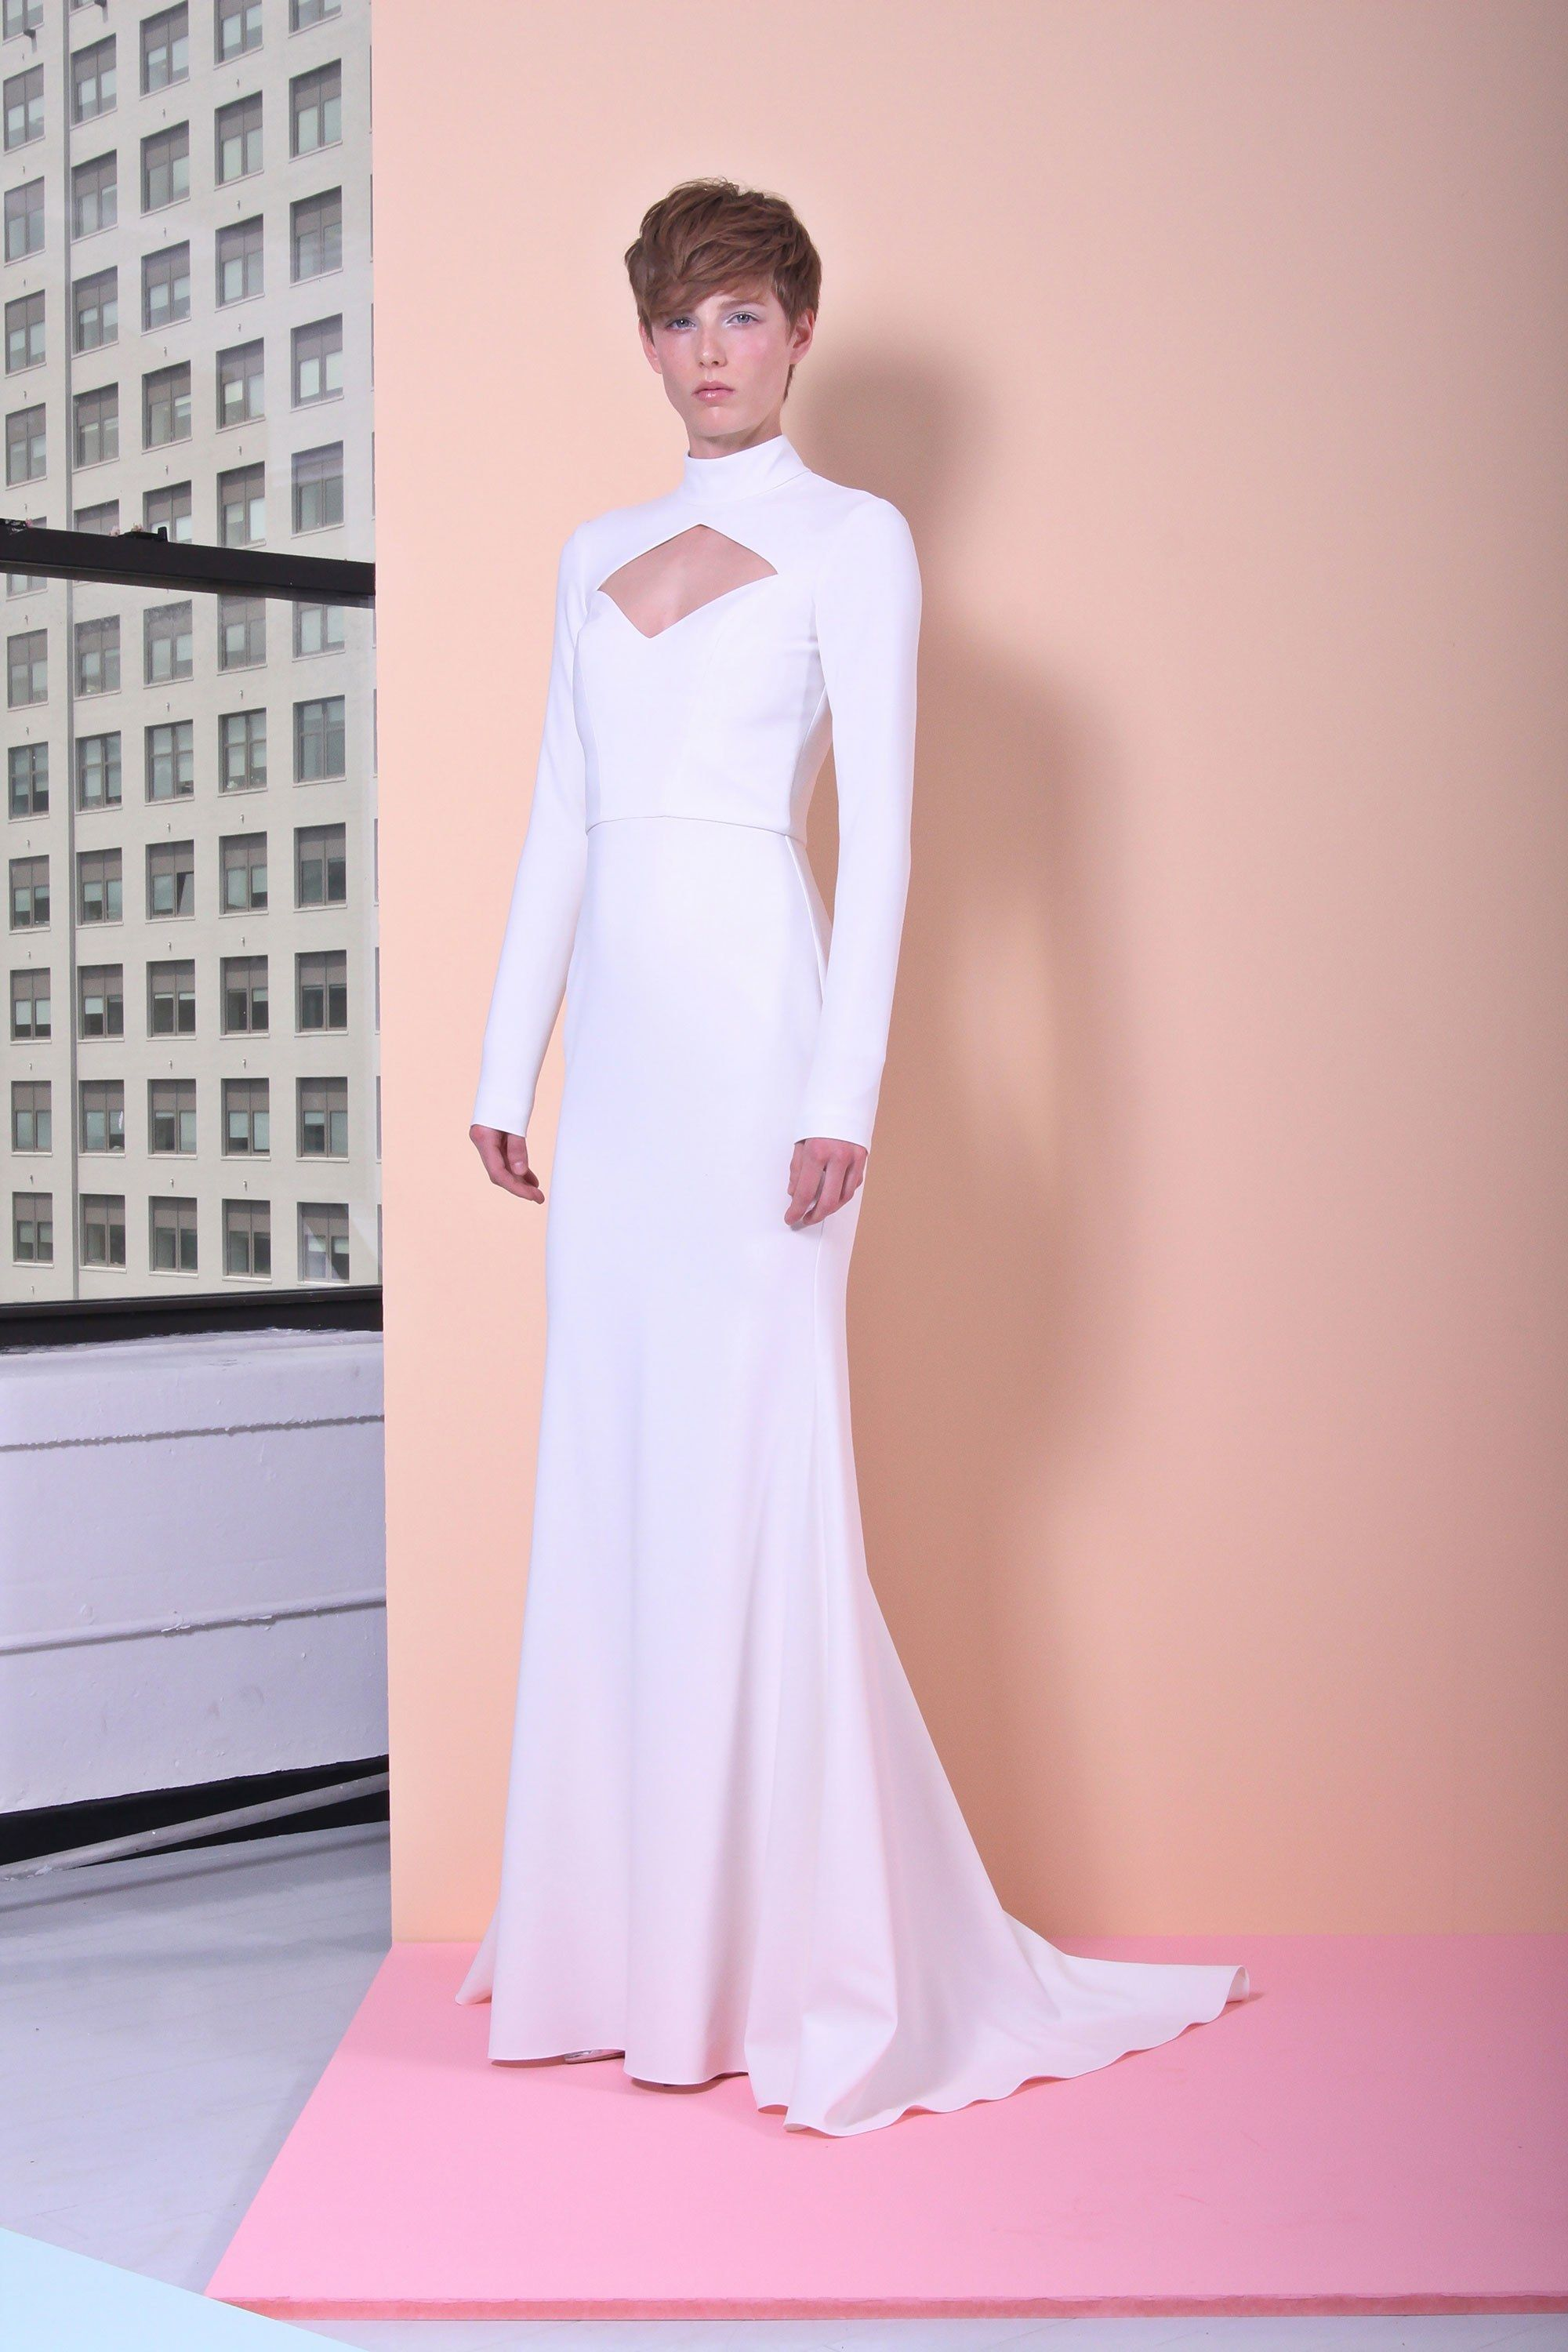 Samira wiley wedding dress  Christian Siriano Resort  Fashion Show  Christian siriano